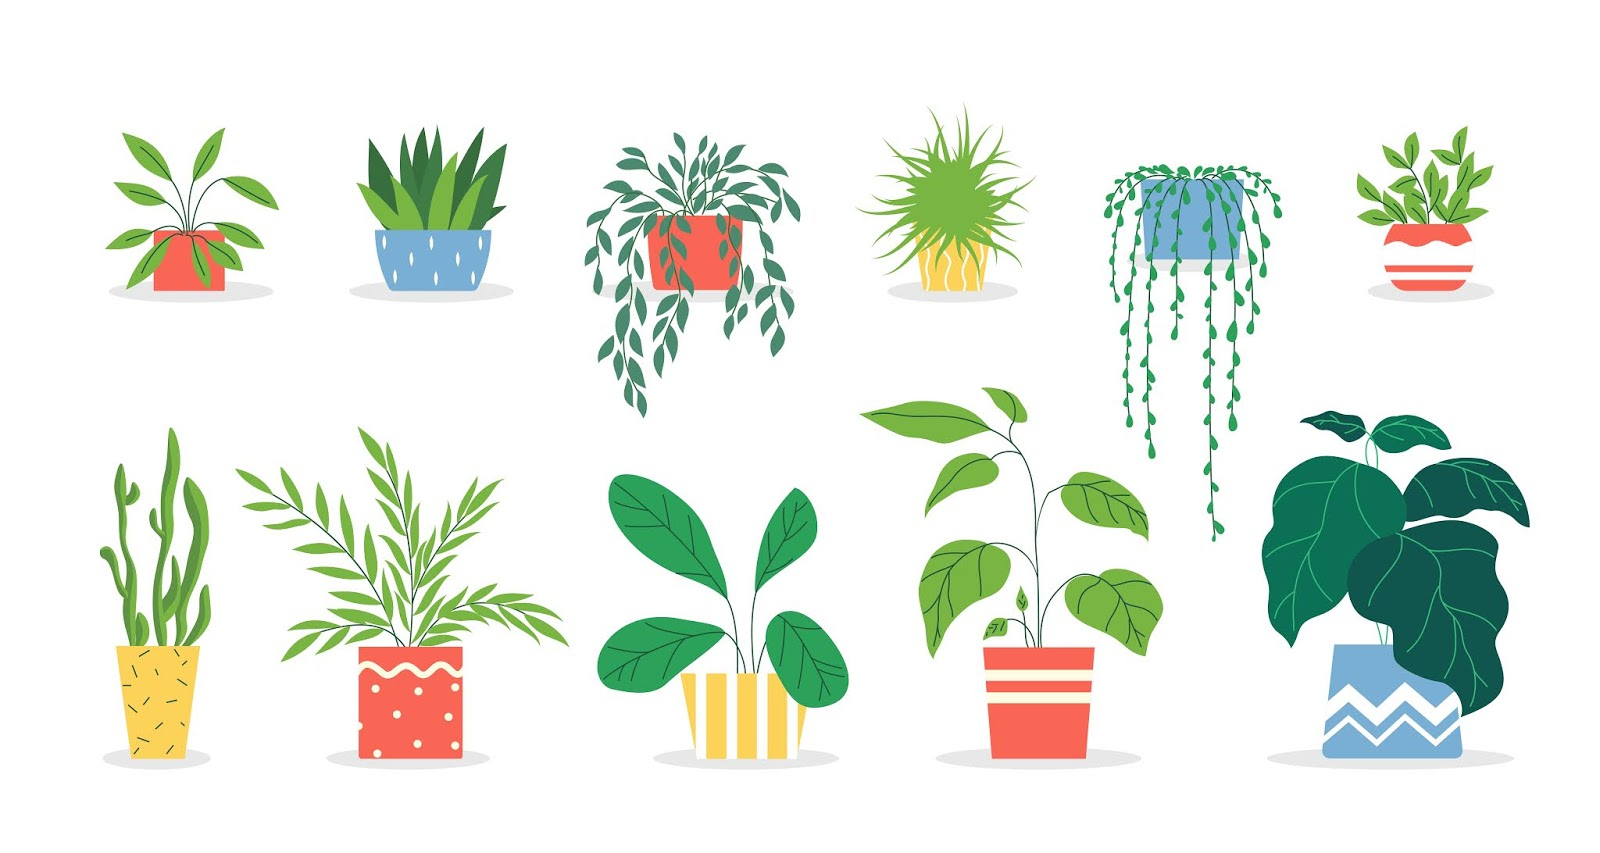 Potted Plants Set Free Download Vector CDR, AI, EPS and PNG Formats